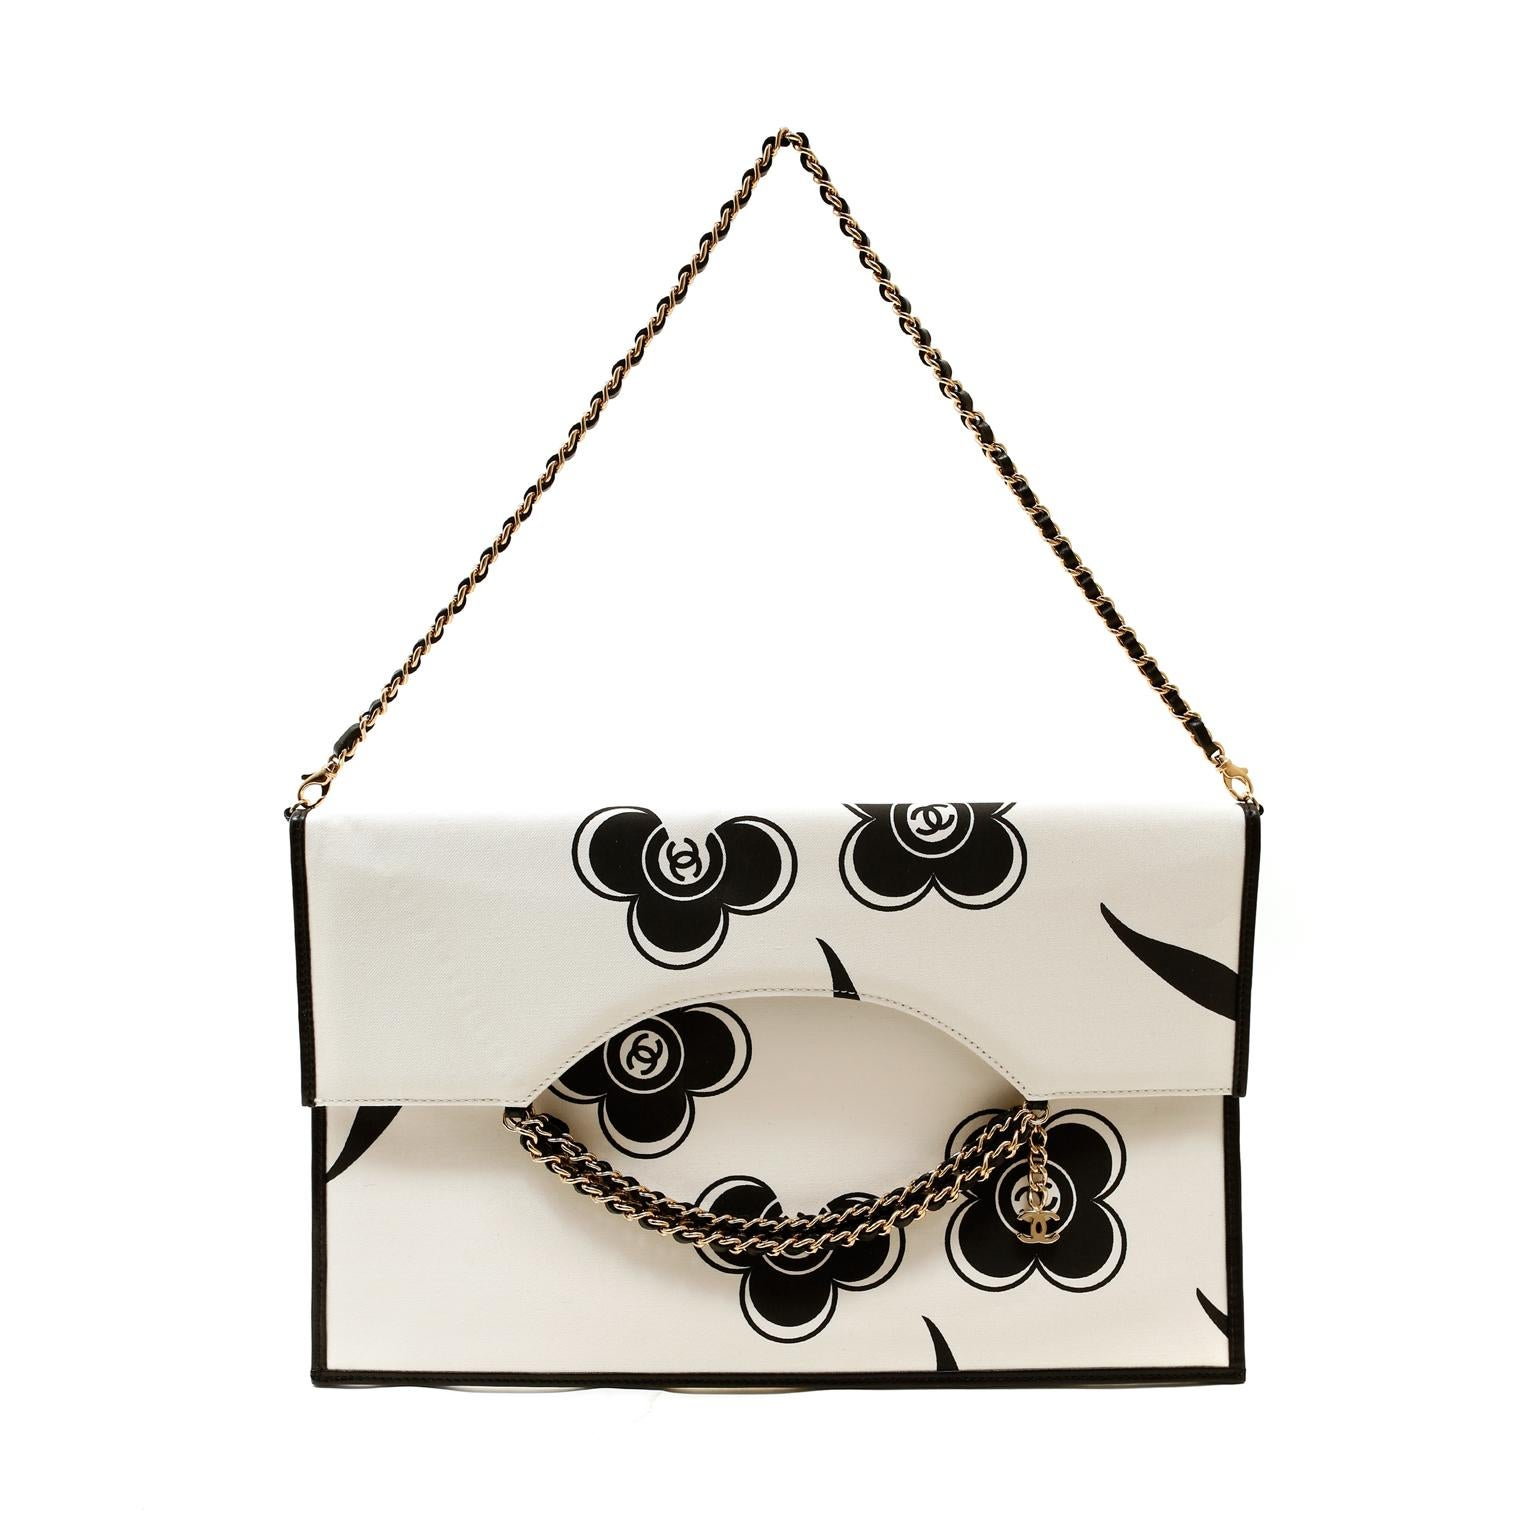 Chanel Ivory and Black Camellia Envelope Clutch with Strap